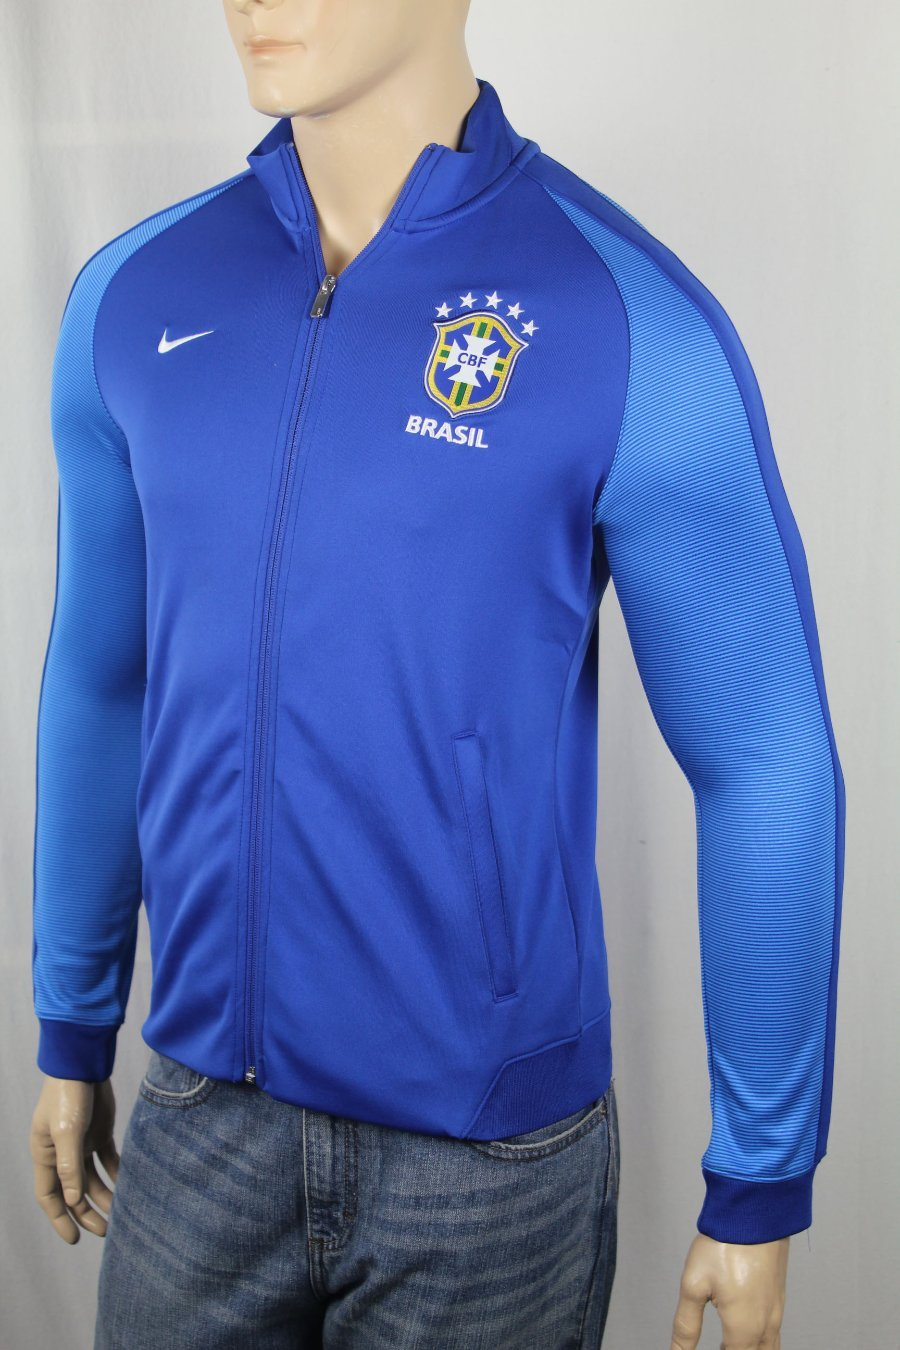 NIKE USA SOCCER TRACK /& FIELD STYLE JACKET SIZE XL L MENS NWT $110